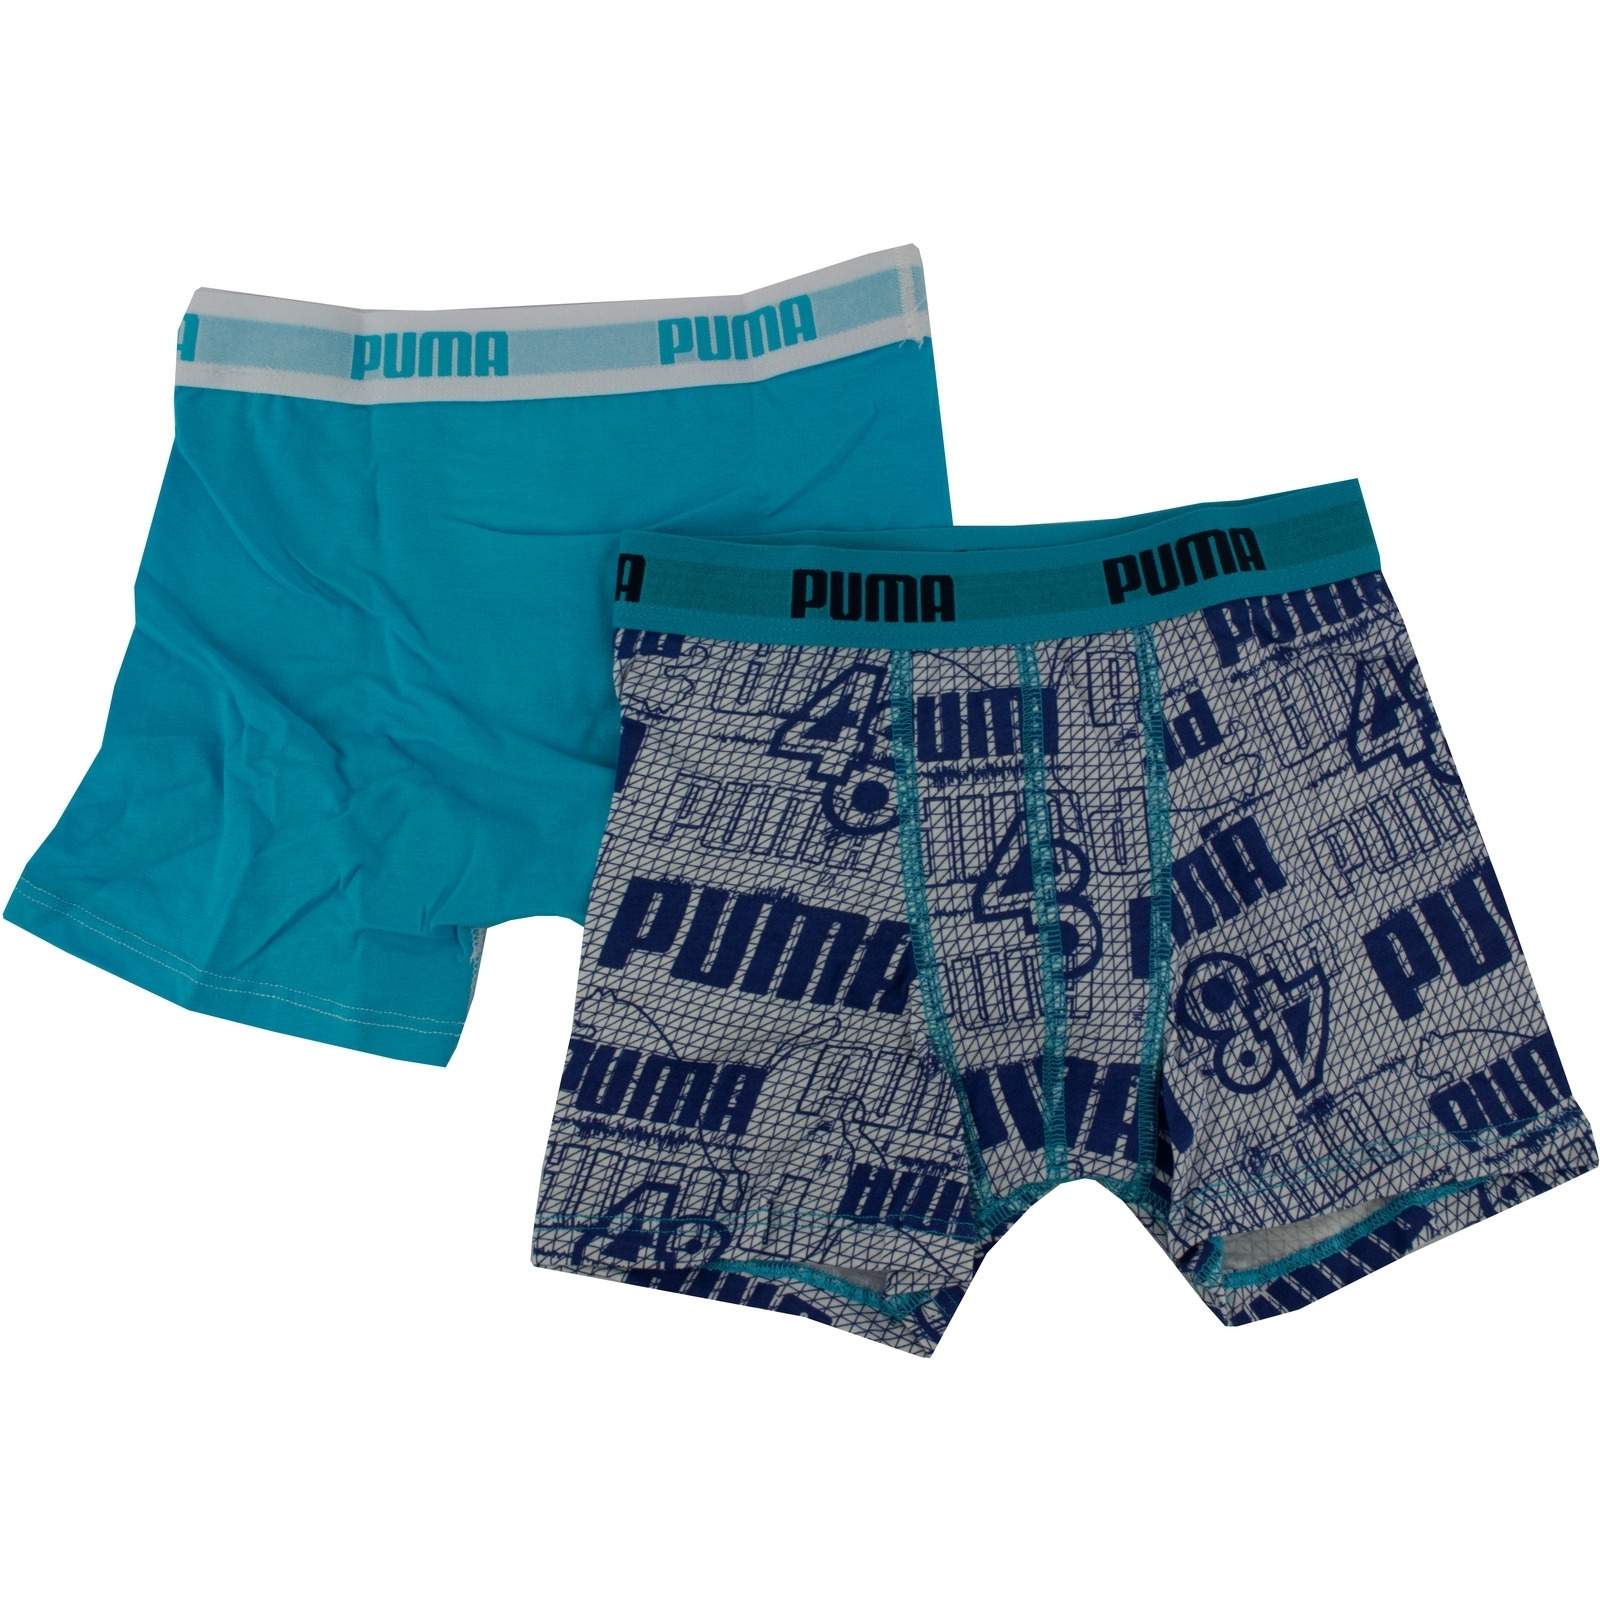 Boxeri copii Puma 2 pack Basic Mini 5350040012